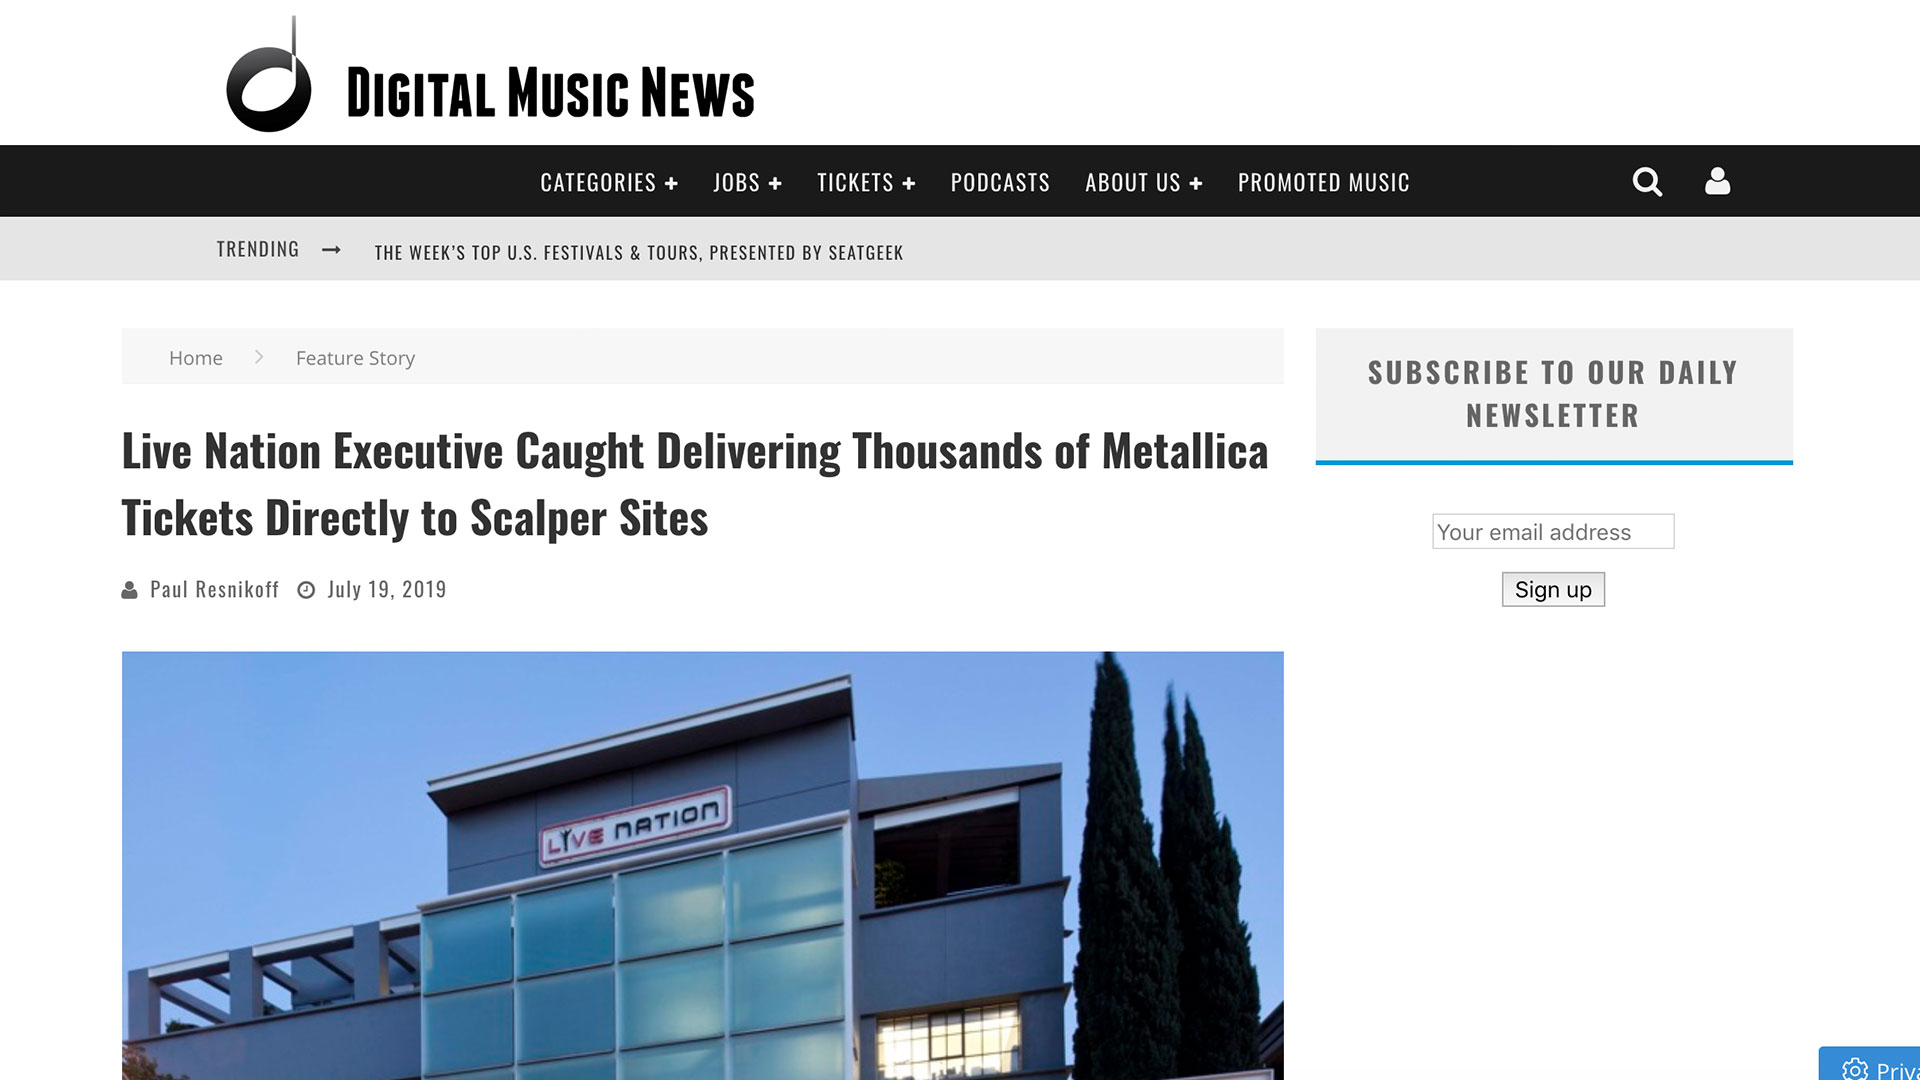 Fairness Rocks News Live Nation Executive Caught Delivering Thousands of Metallica Tickets Directly to Scalper Sites